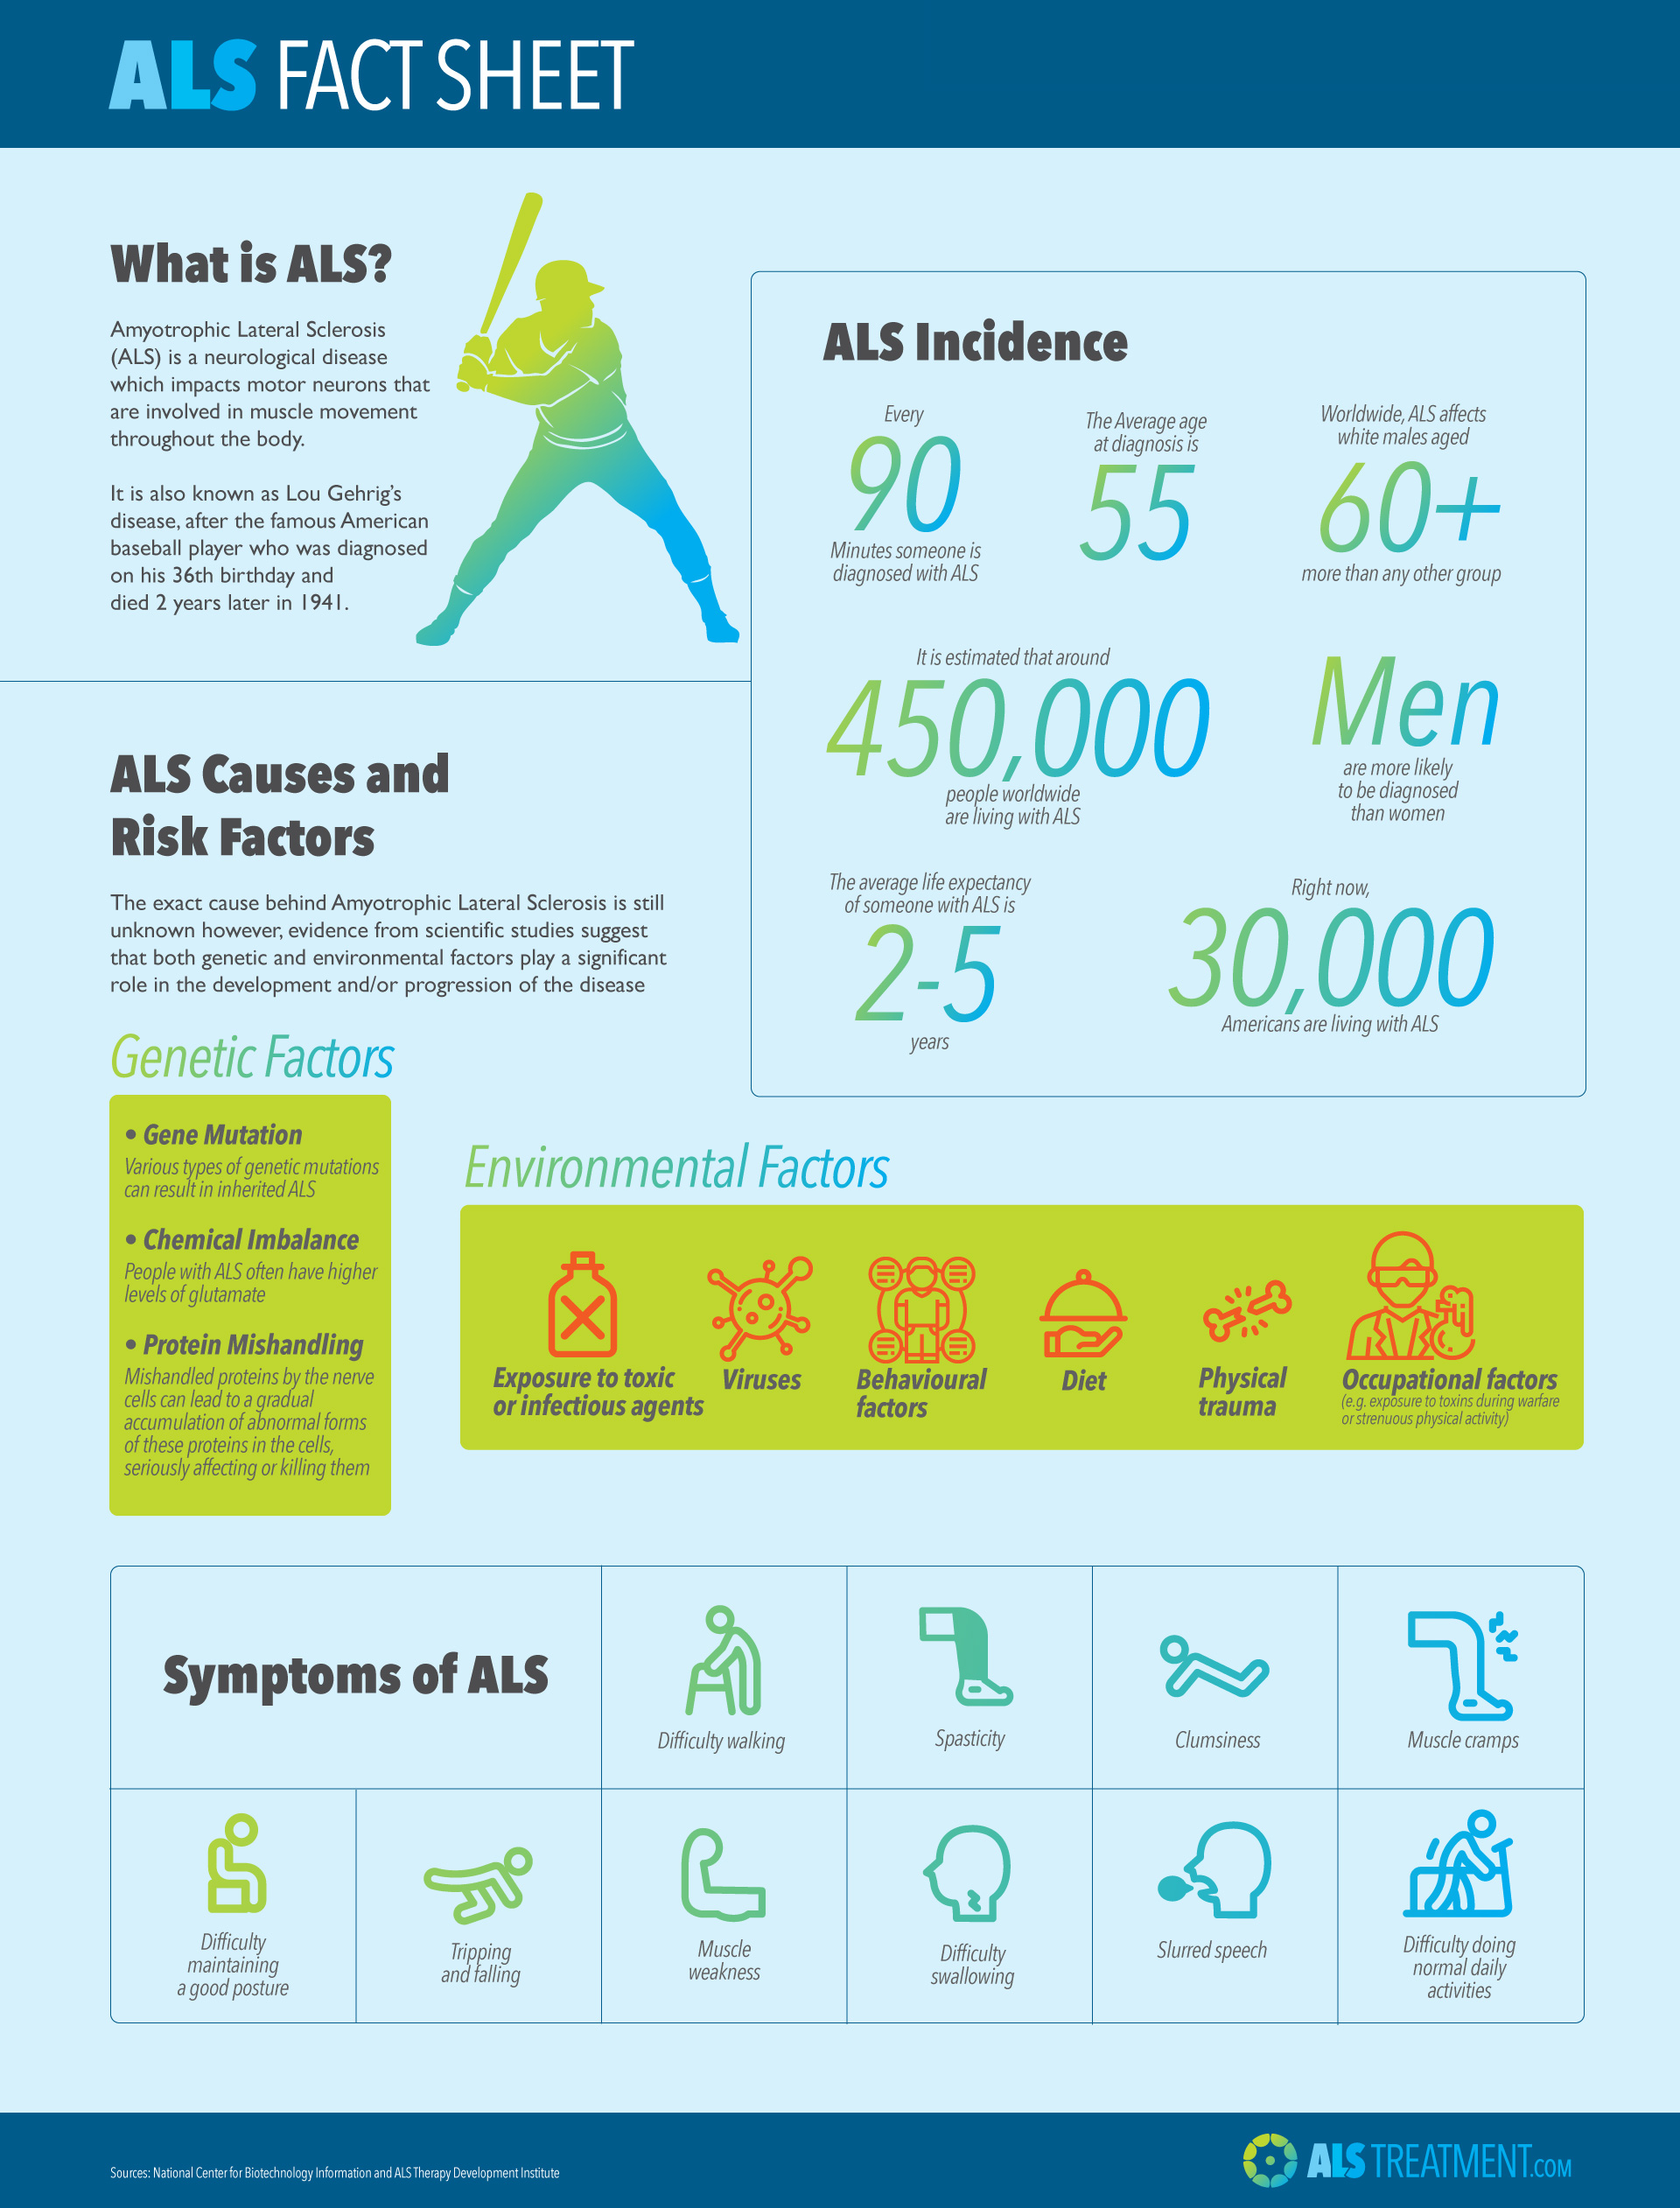 10 Interesting Facts about ALS | Alstreatment com